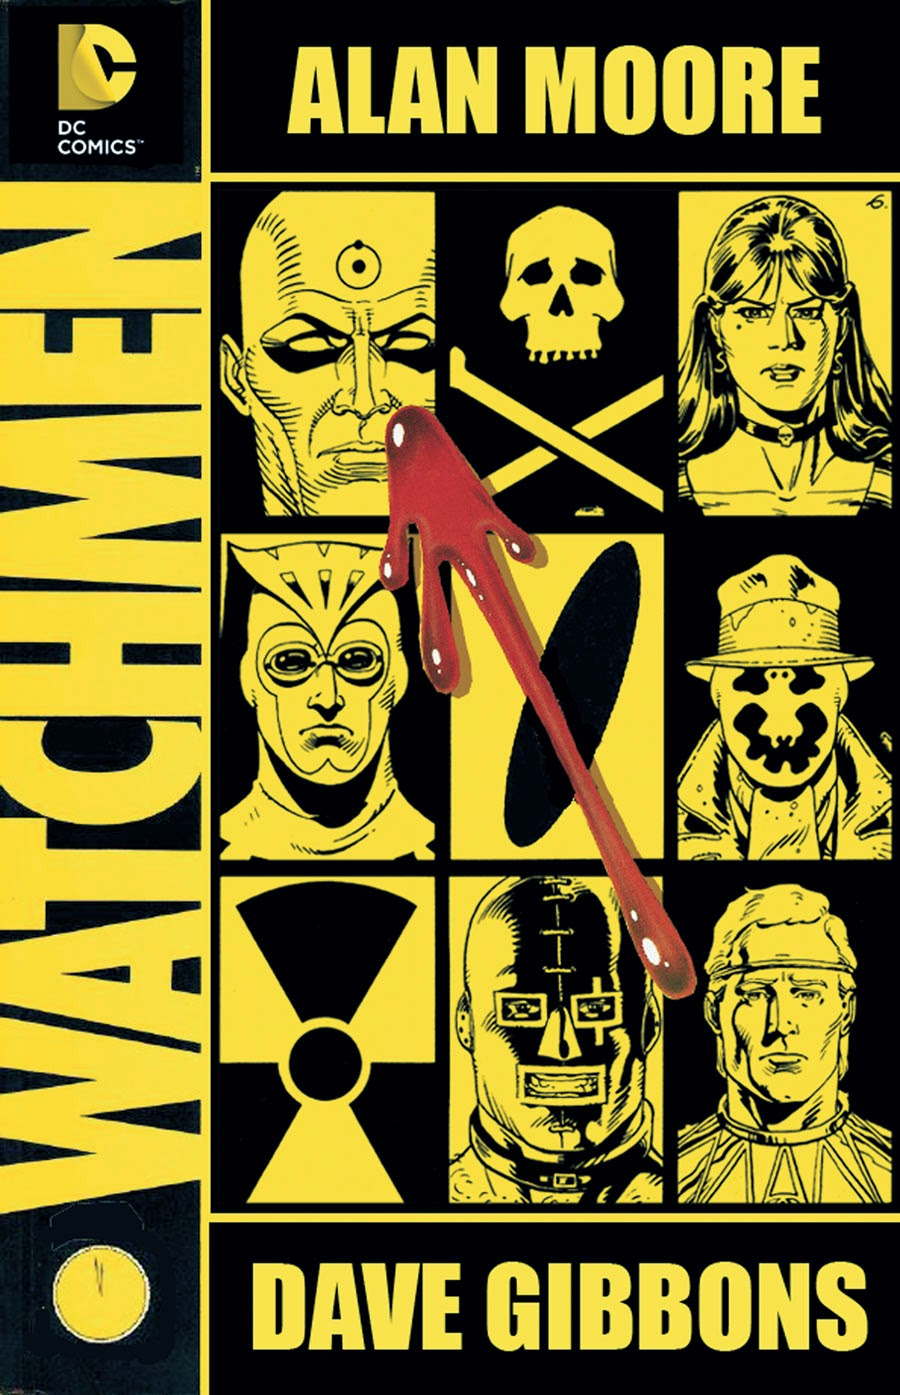 Watchmen cover, courtesy of Manga Sanctuary